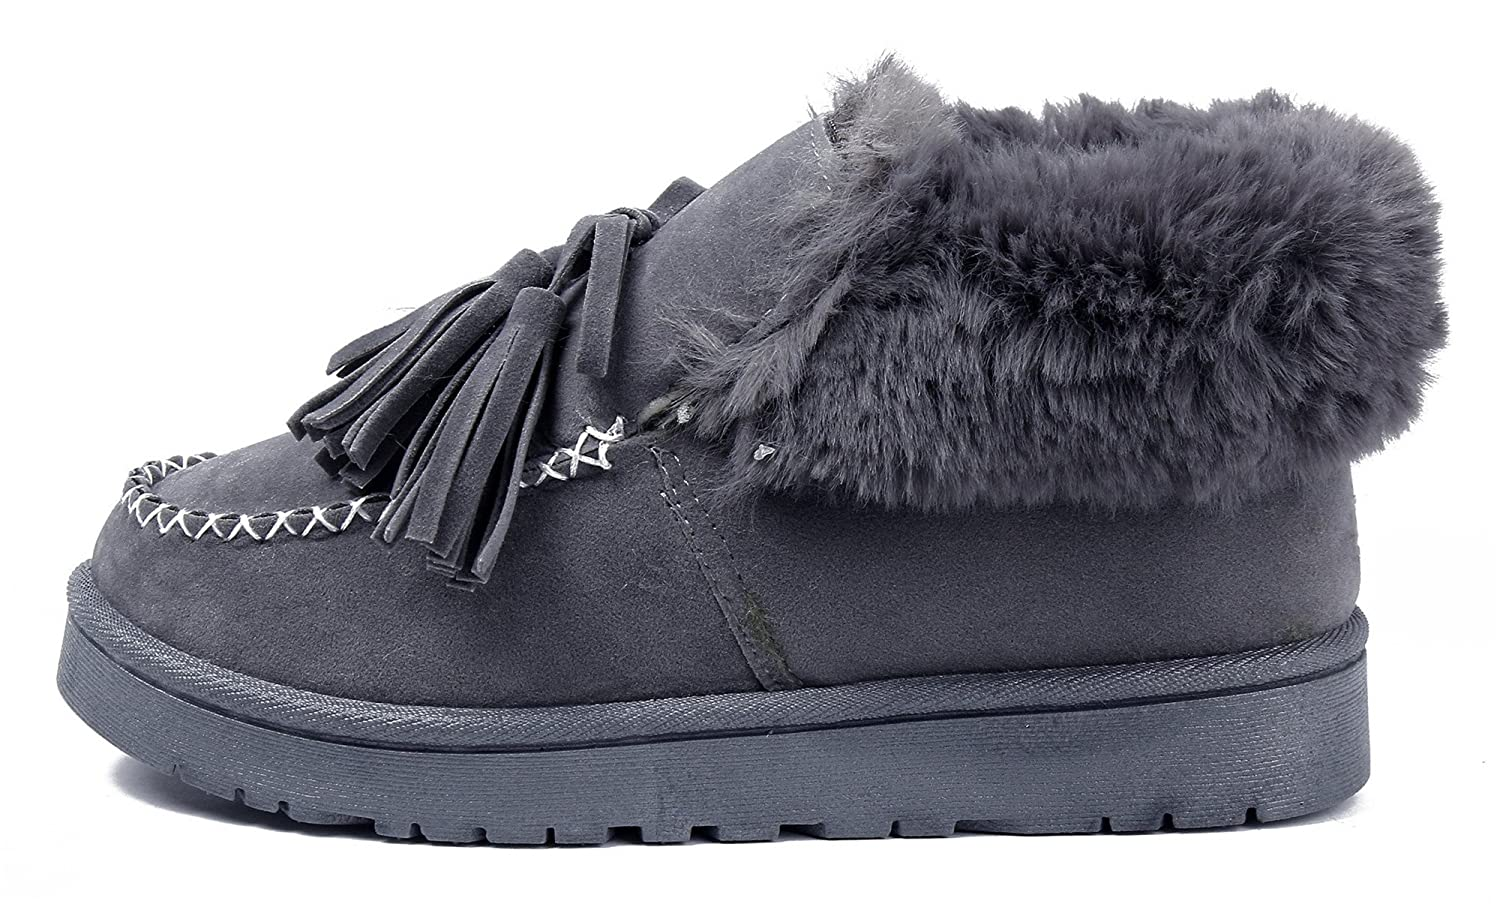 AgeeMi Shoes Mocasines Mujeres Invierno Nieve Botas Impermeable Plano Bota: Amazon.es: Zapatos y complementos